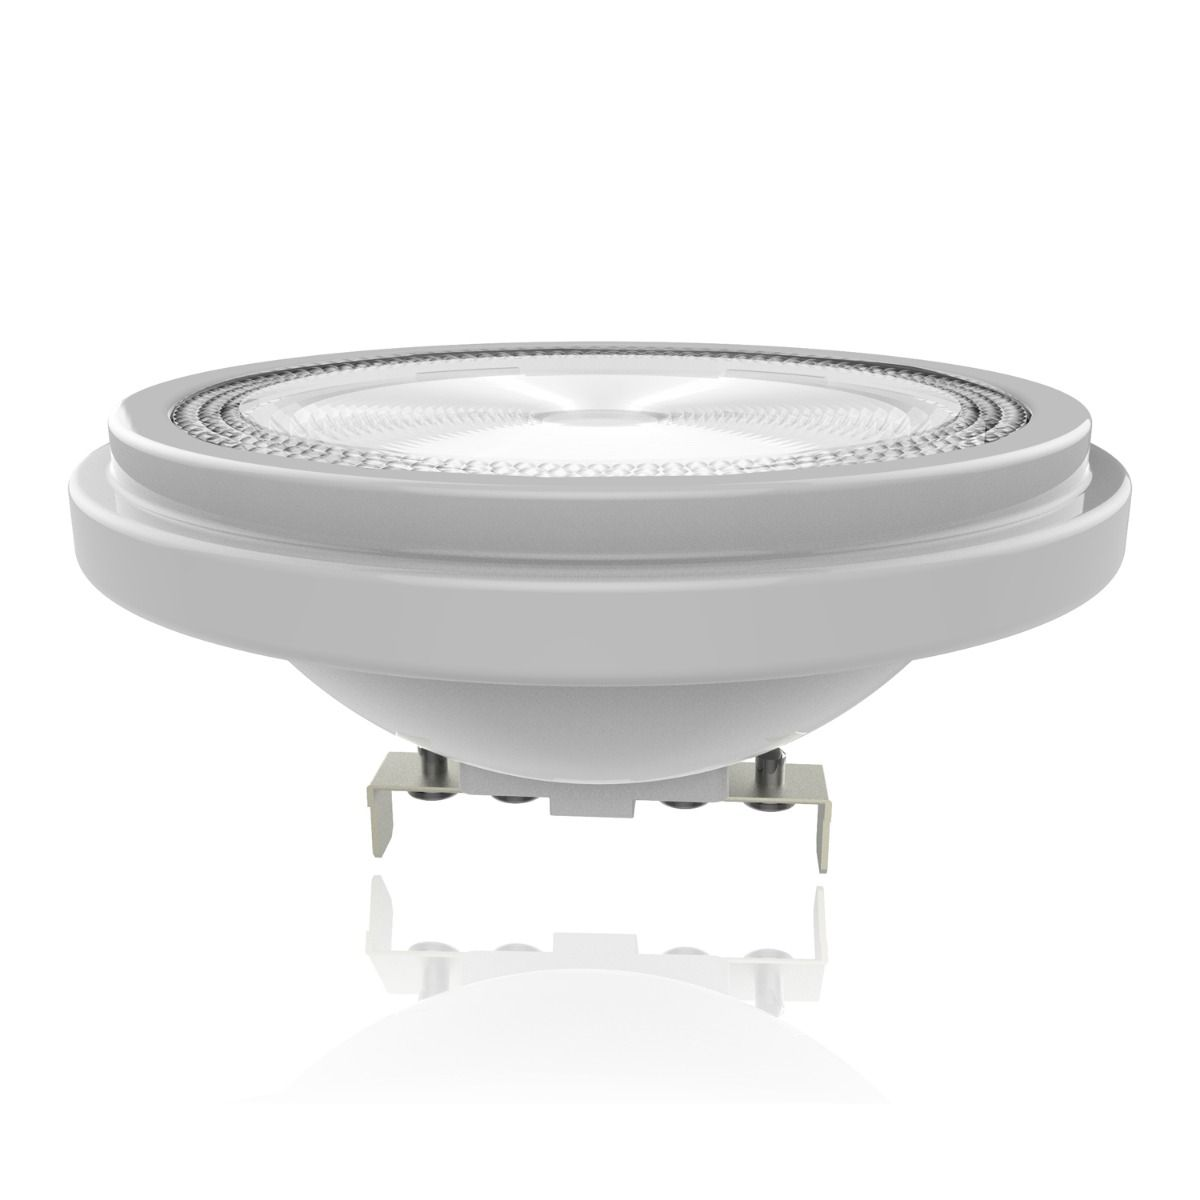 Noxion Lucent LED Spot AR111 G53 12V 13.3W 930 40D | Dimmable - Highest Colour Rendering - Replacer for 100W